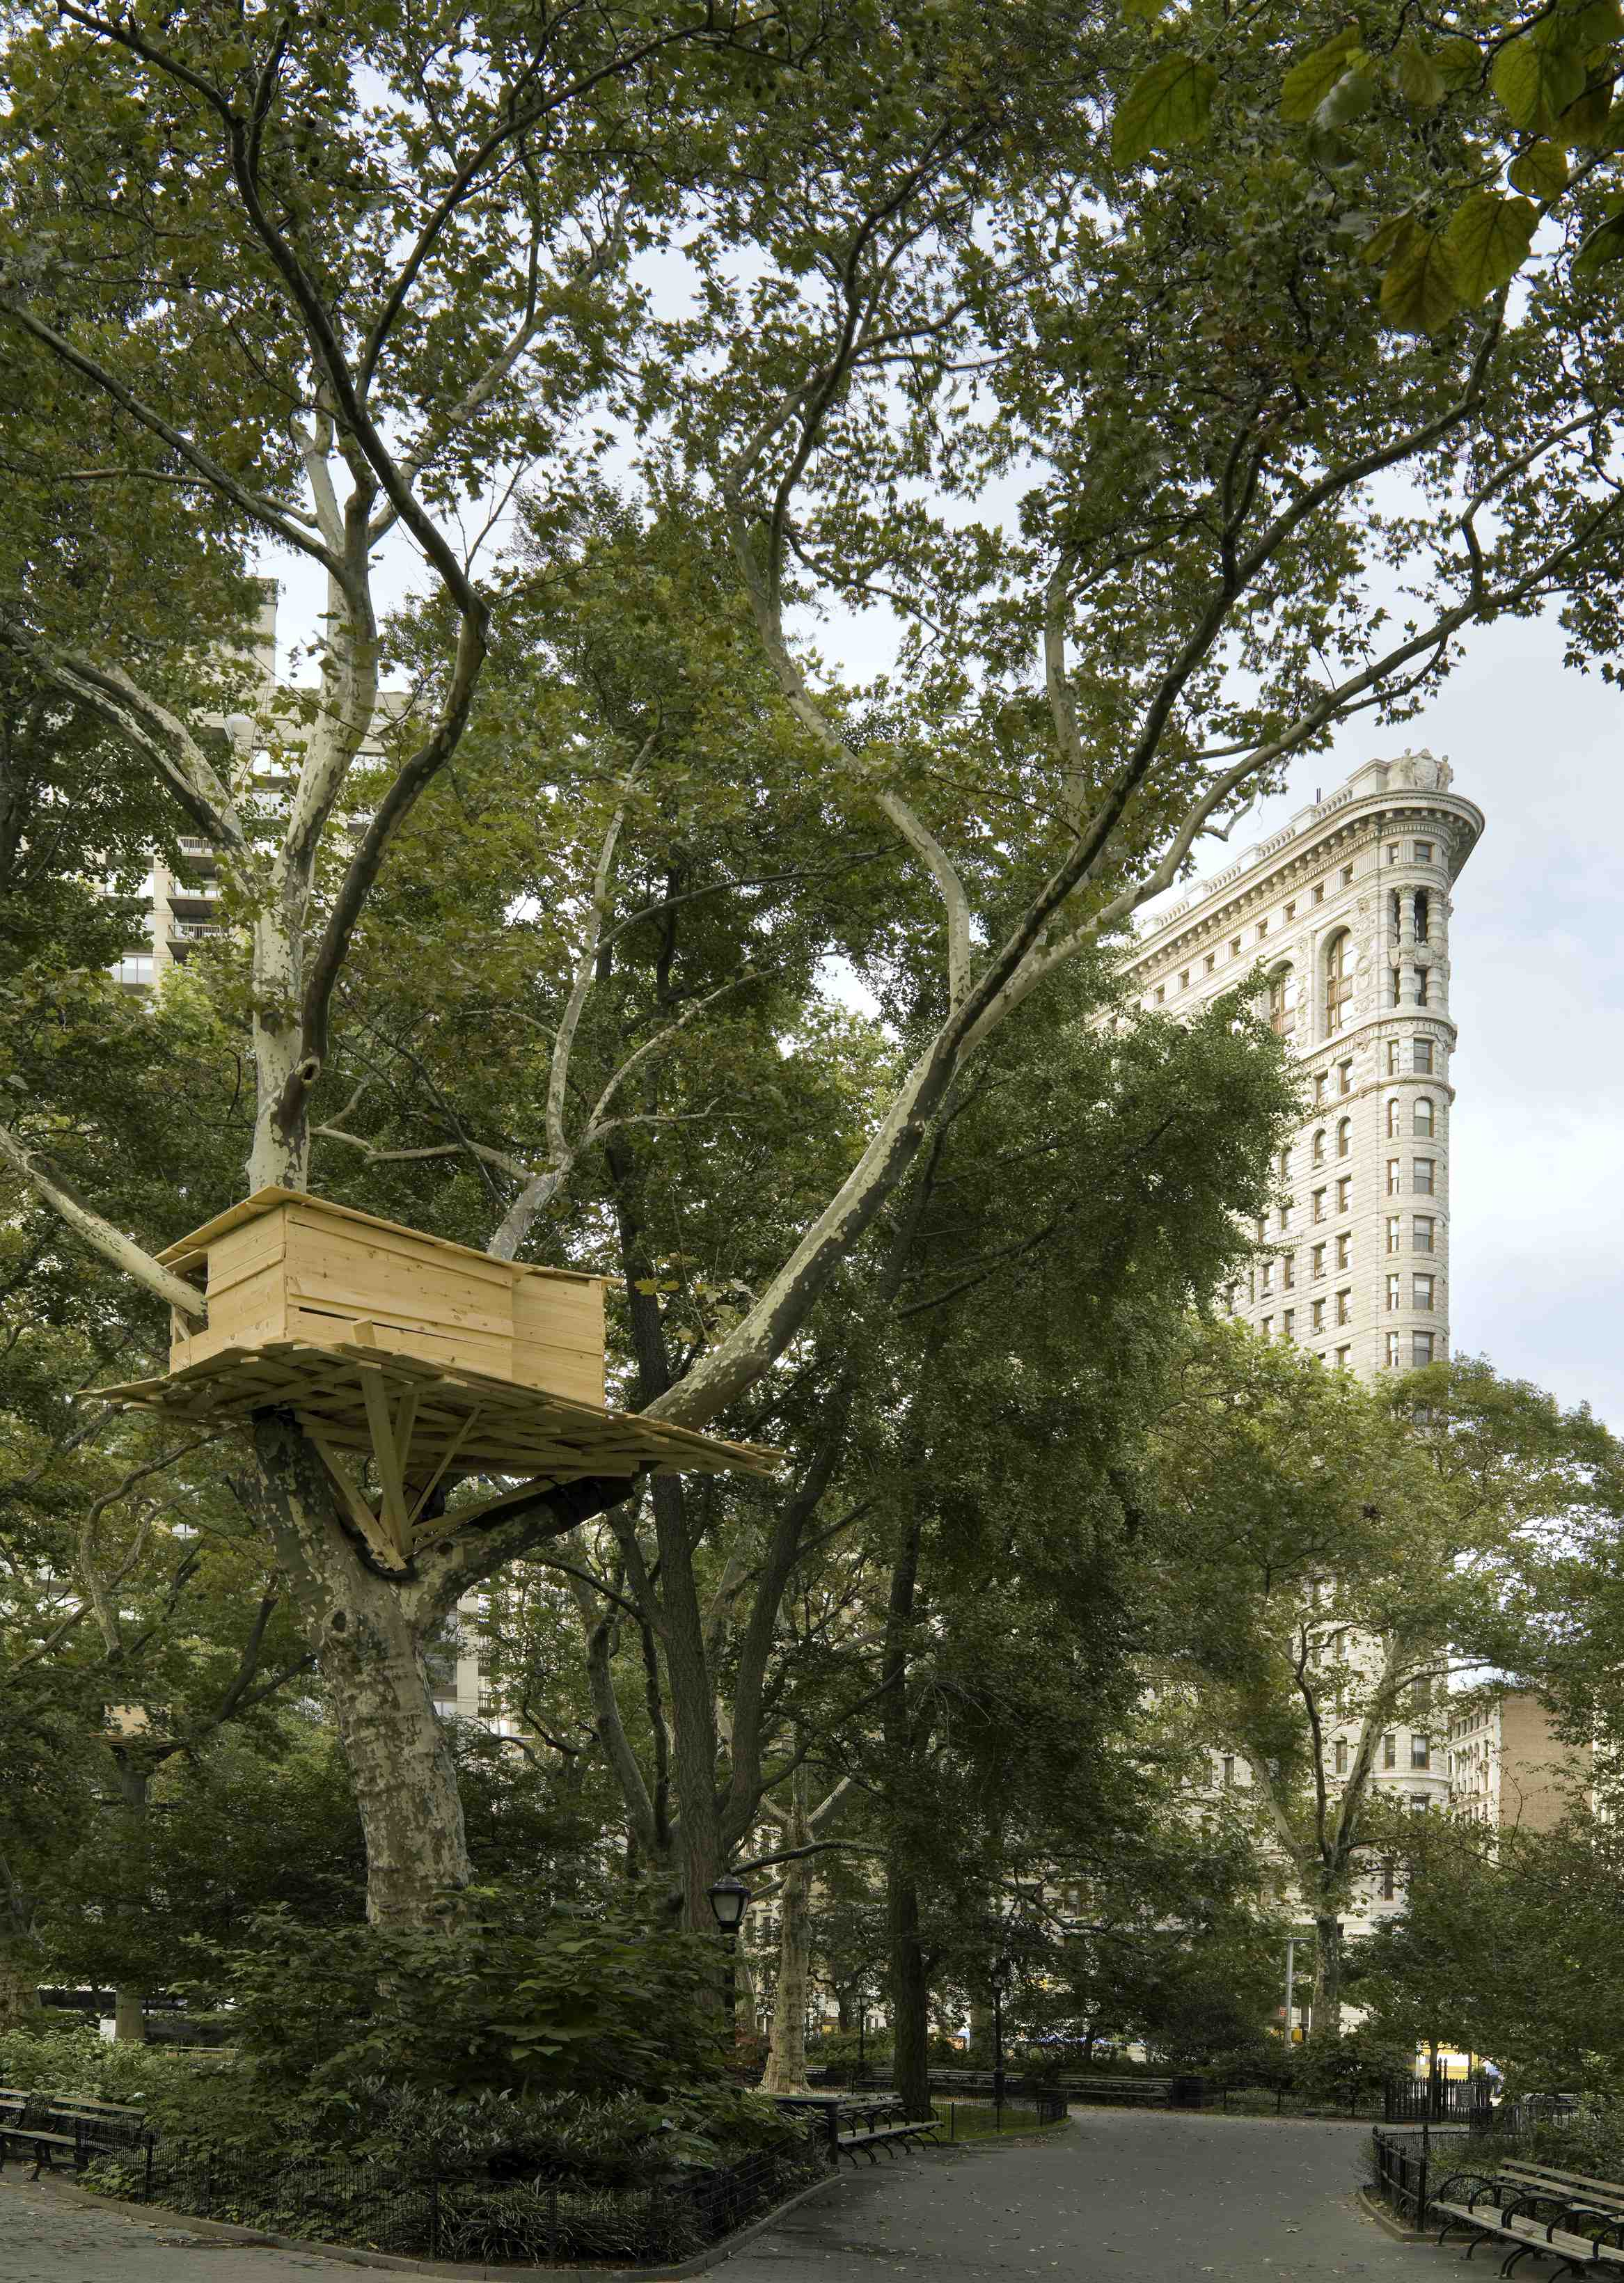 Tadashi Kawamatas Tree Huts Projekt von 2008 in Paris und New York City